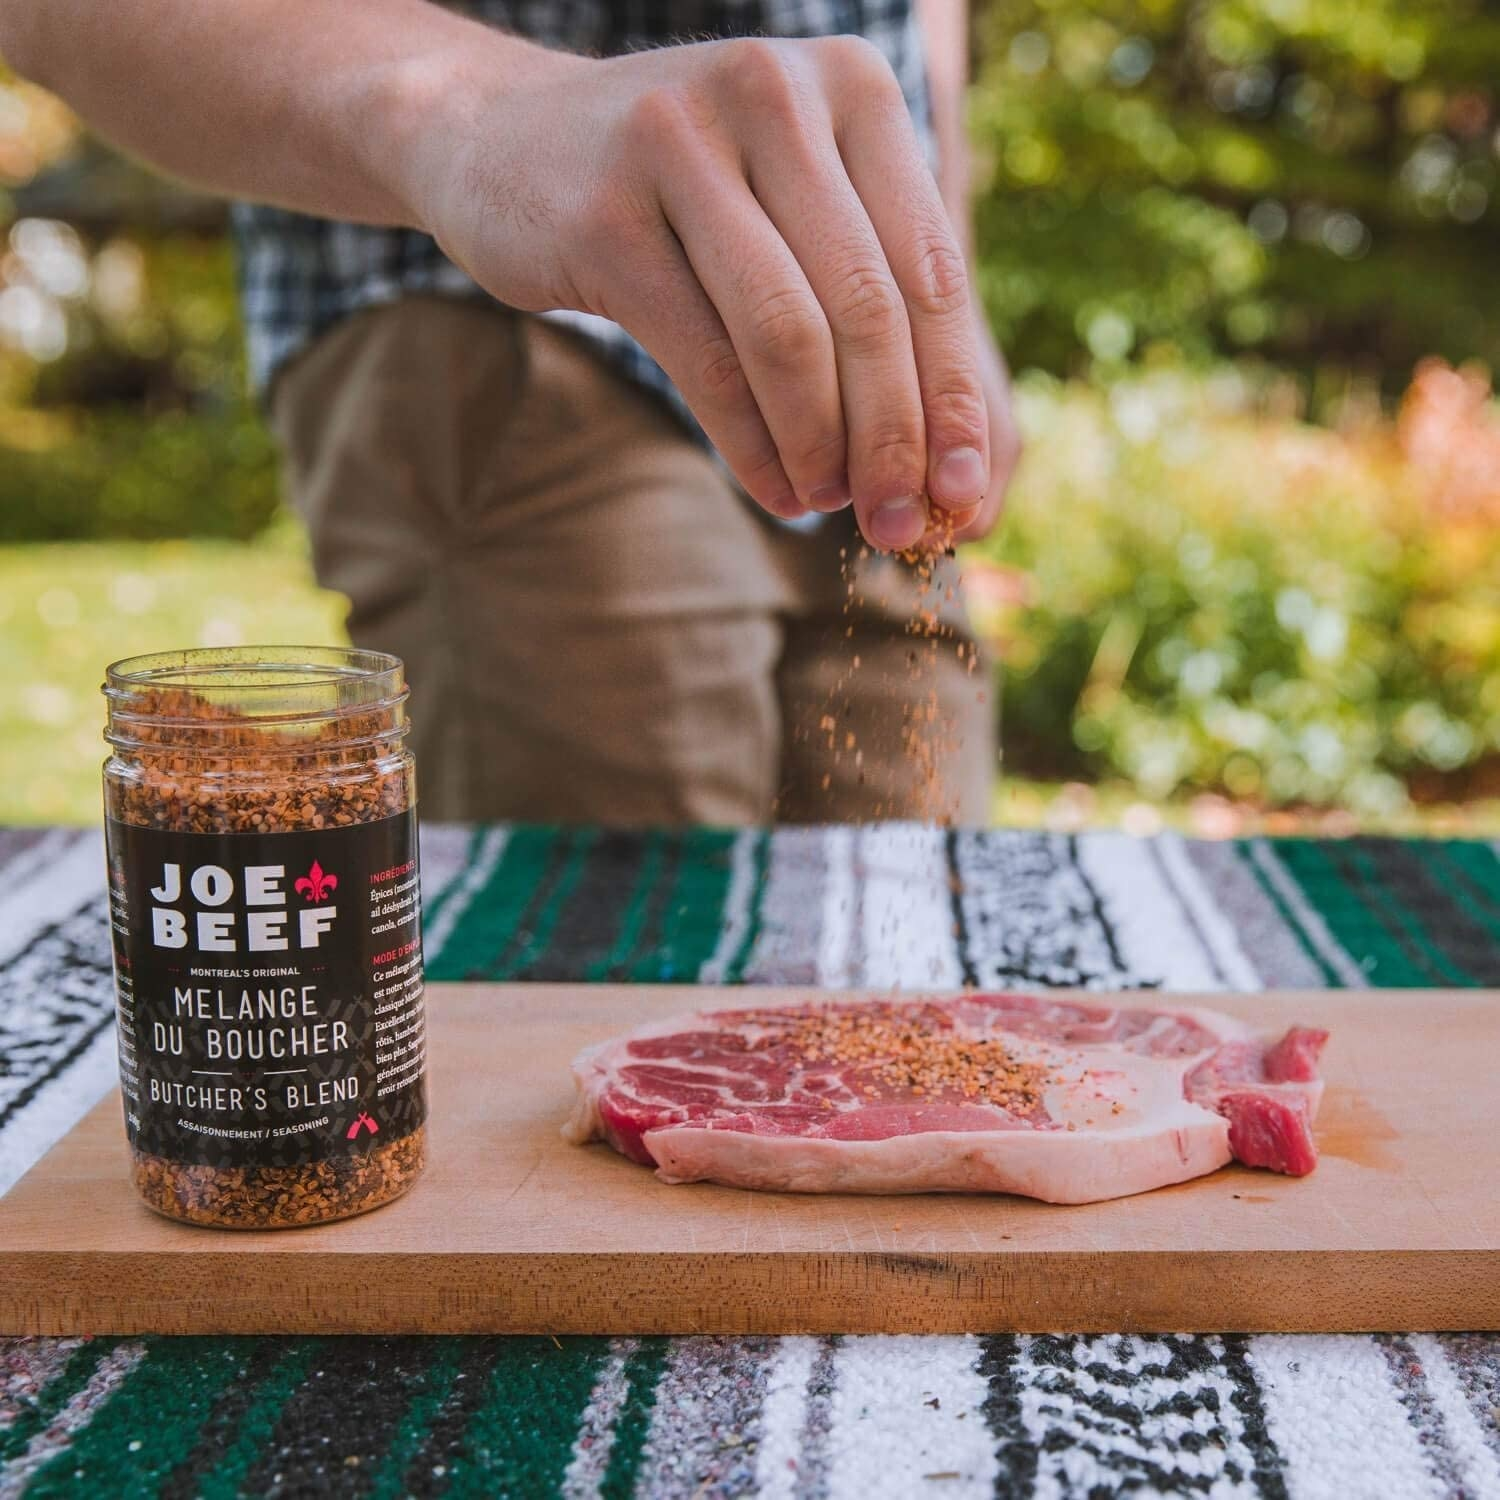 A hand is sprinkling seasoning onto a piece of meat on a cutting board with a bottle of seasoning beside it